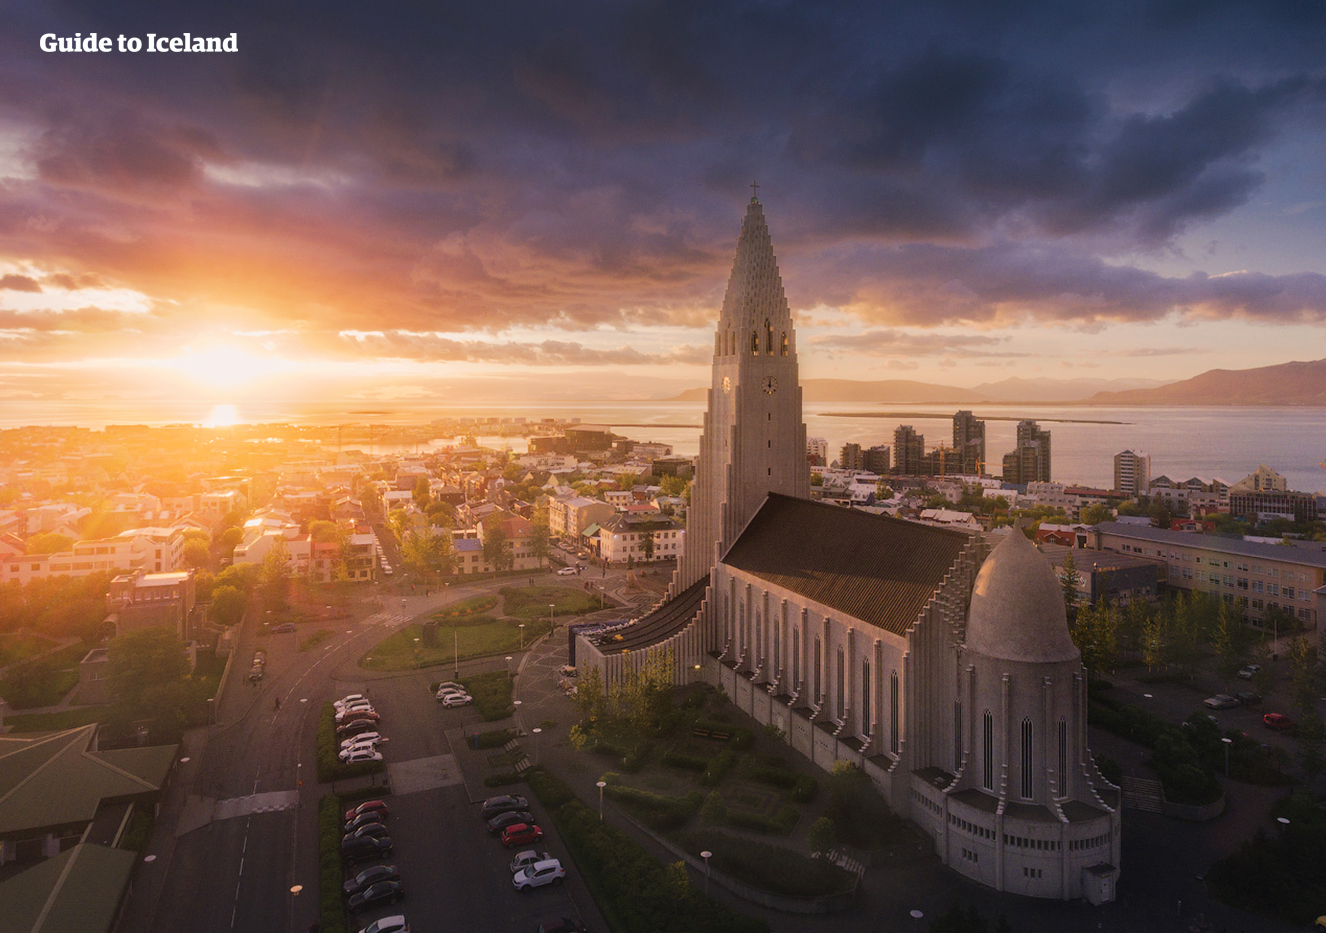 Spend your summer days in Reykjavík with a summer self-drive tour.